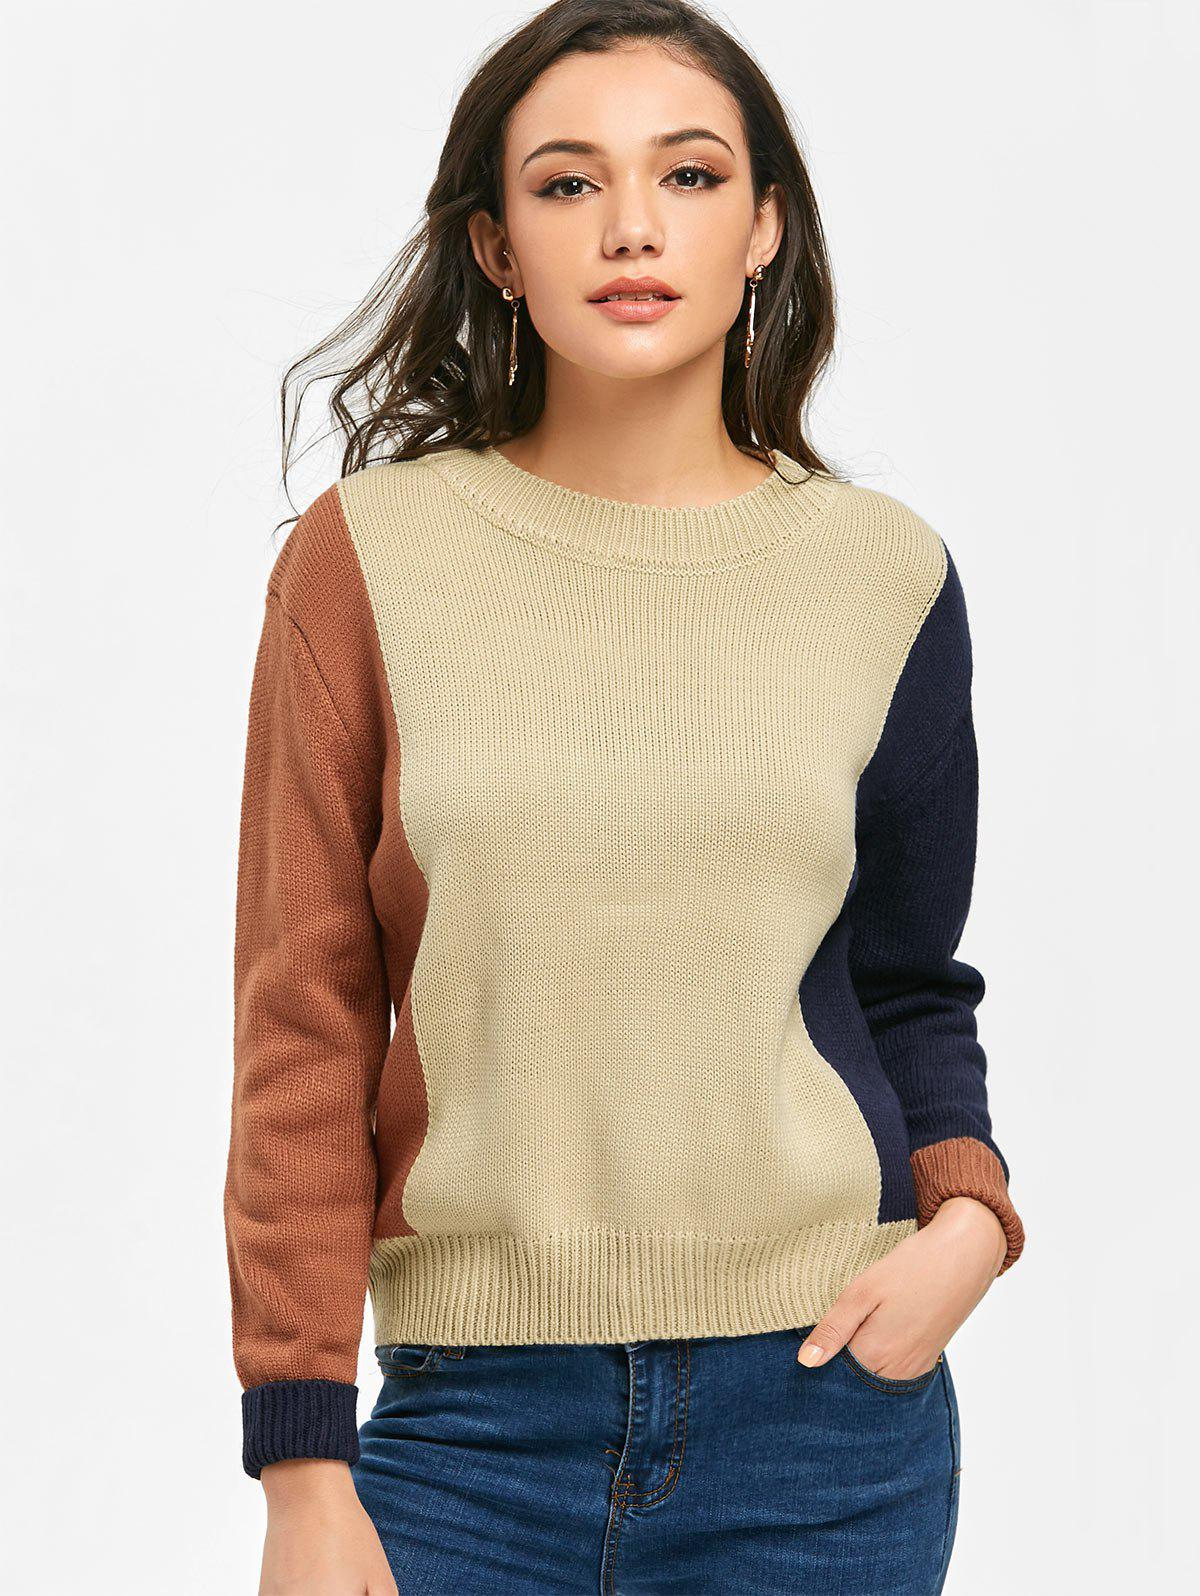 Ribbed Hem Color Block Pullover Sweater 232671401